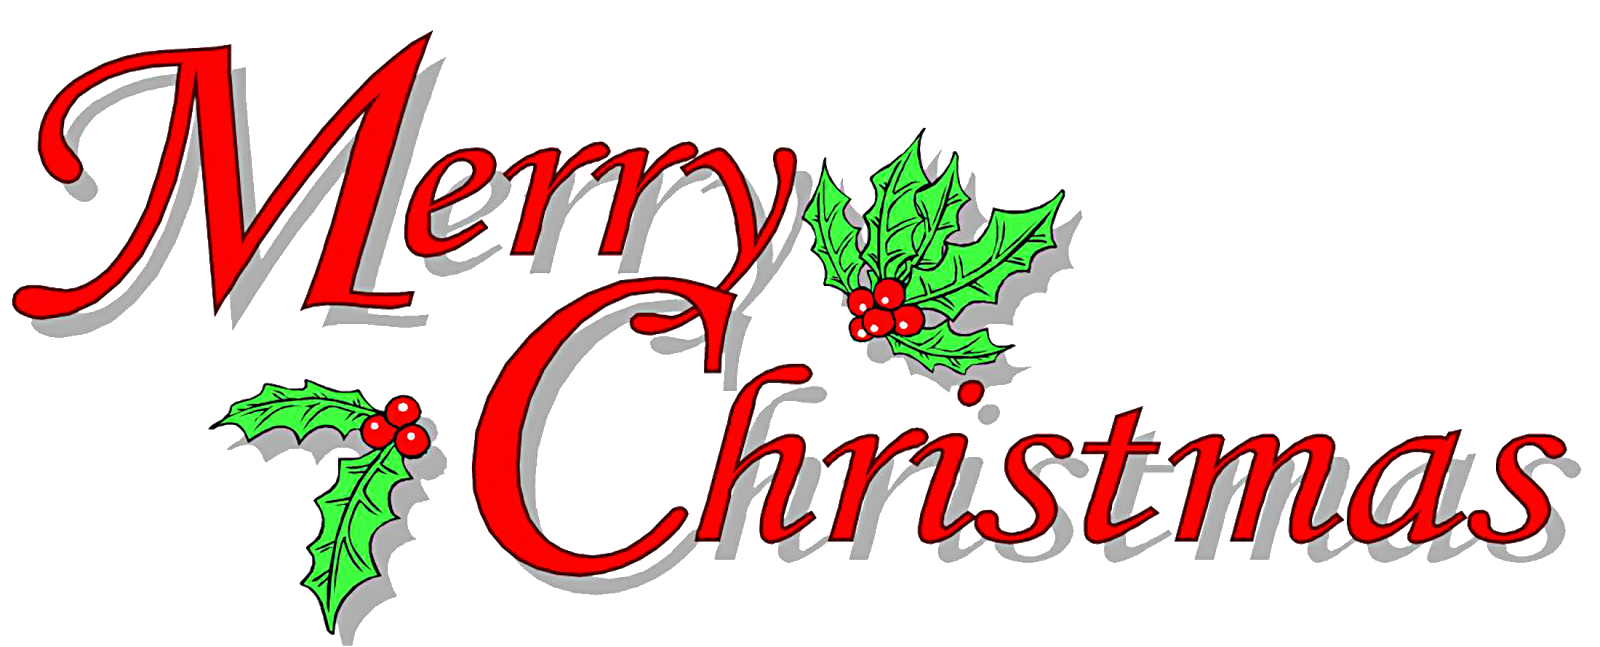 Funny Merry Christmas Fonts Clipart Greetings Images Clip Art Free Quotes Word Wrapping